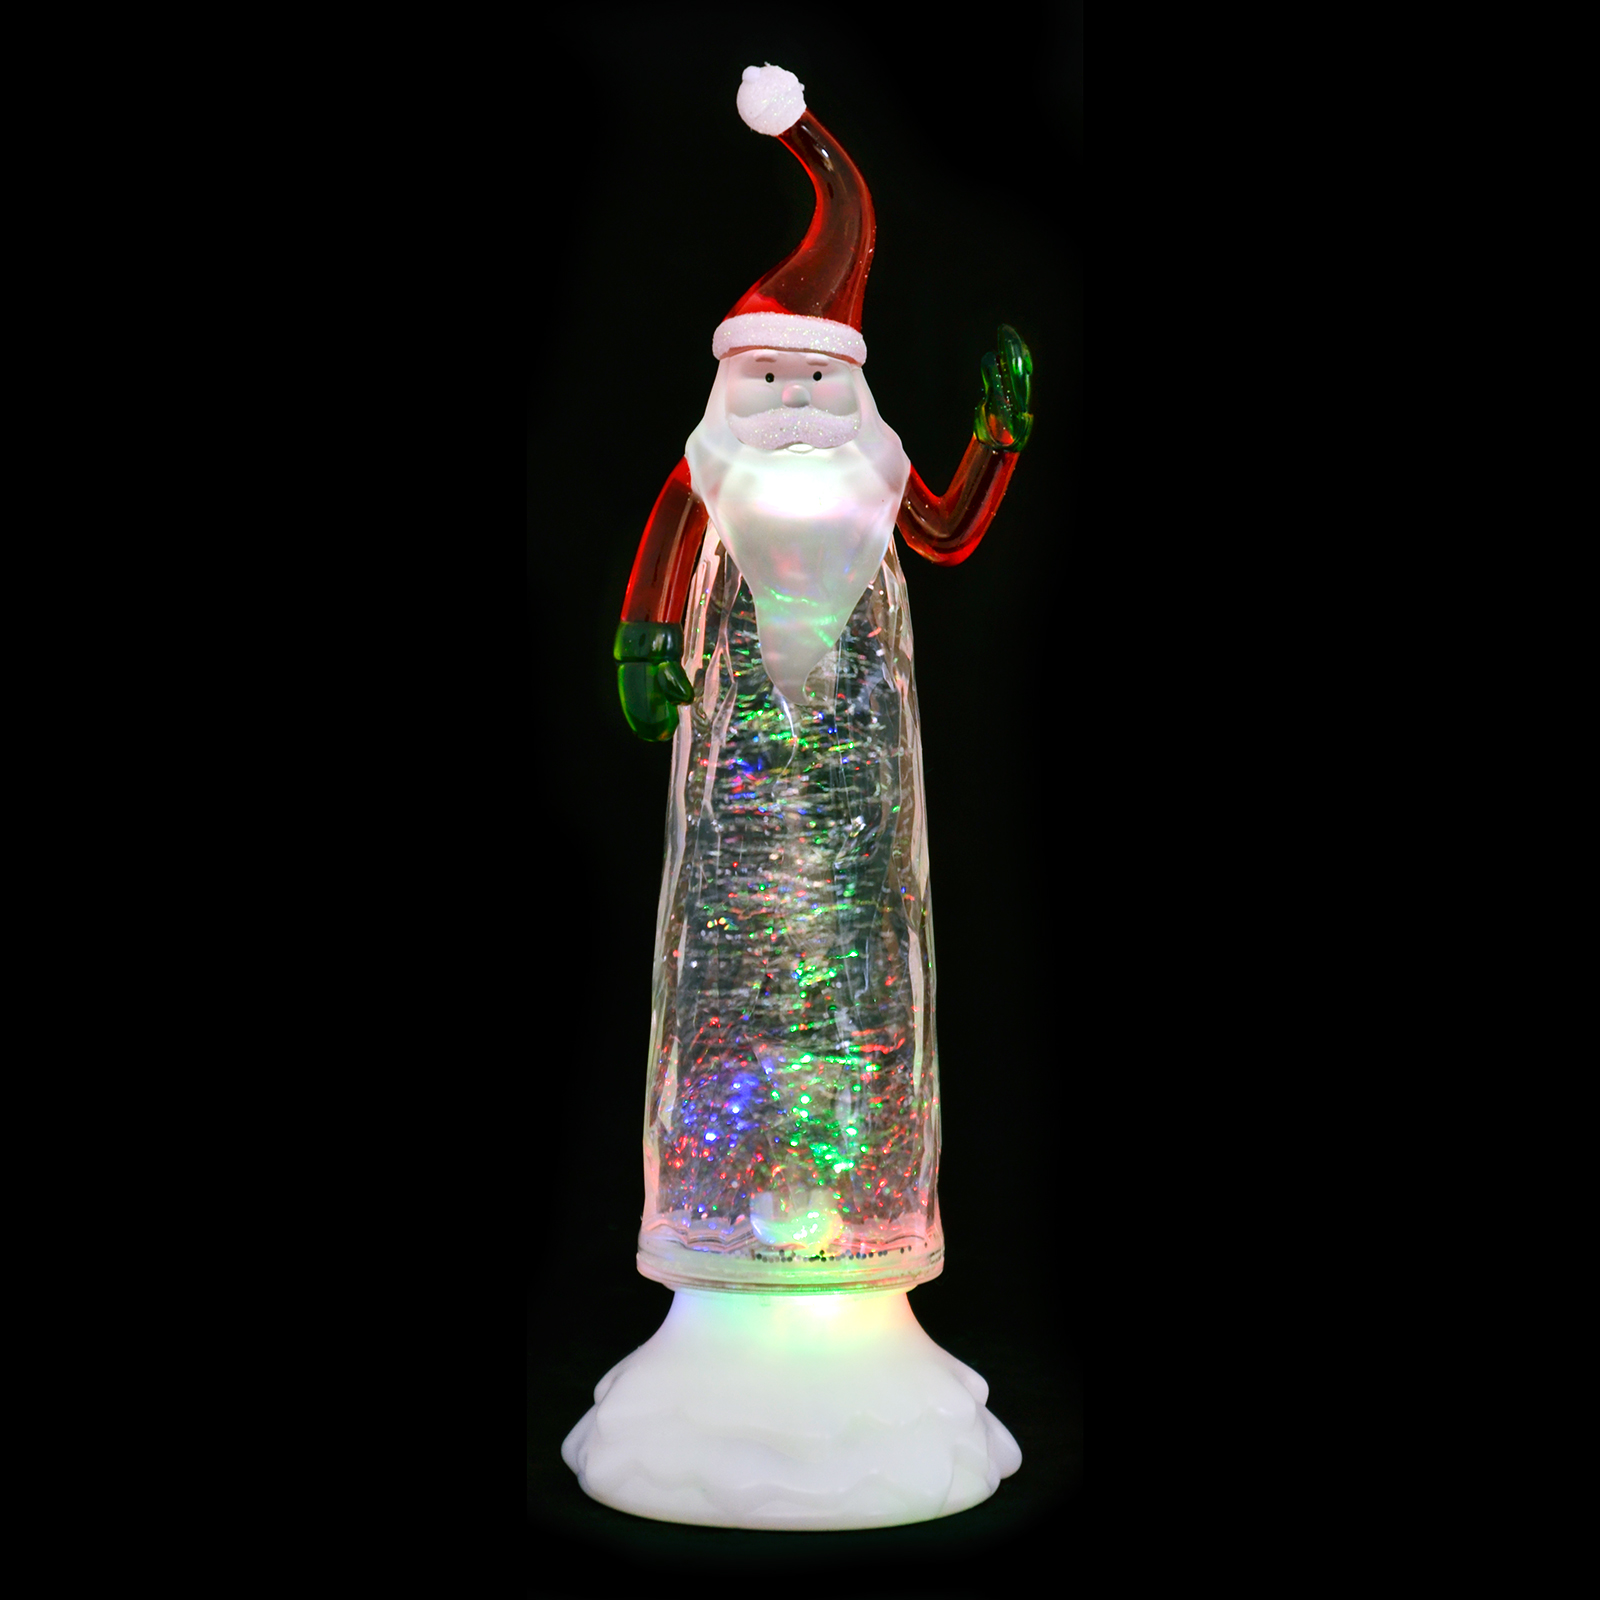 Colour Changing LED Light Up Glitter Water Ornament ...